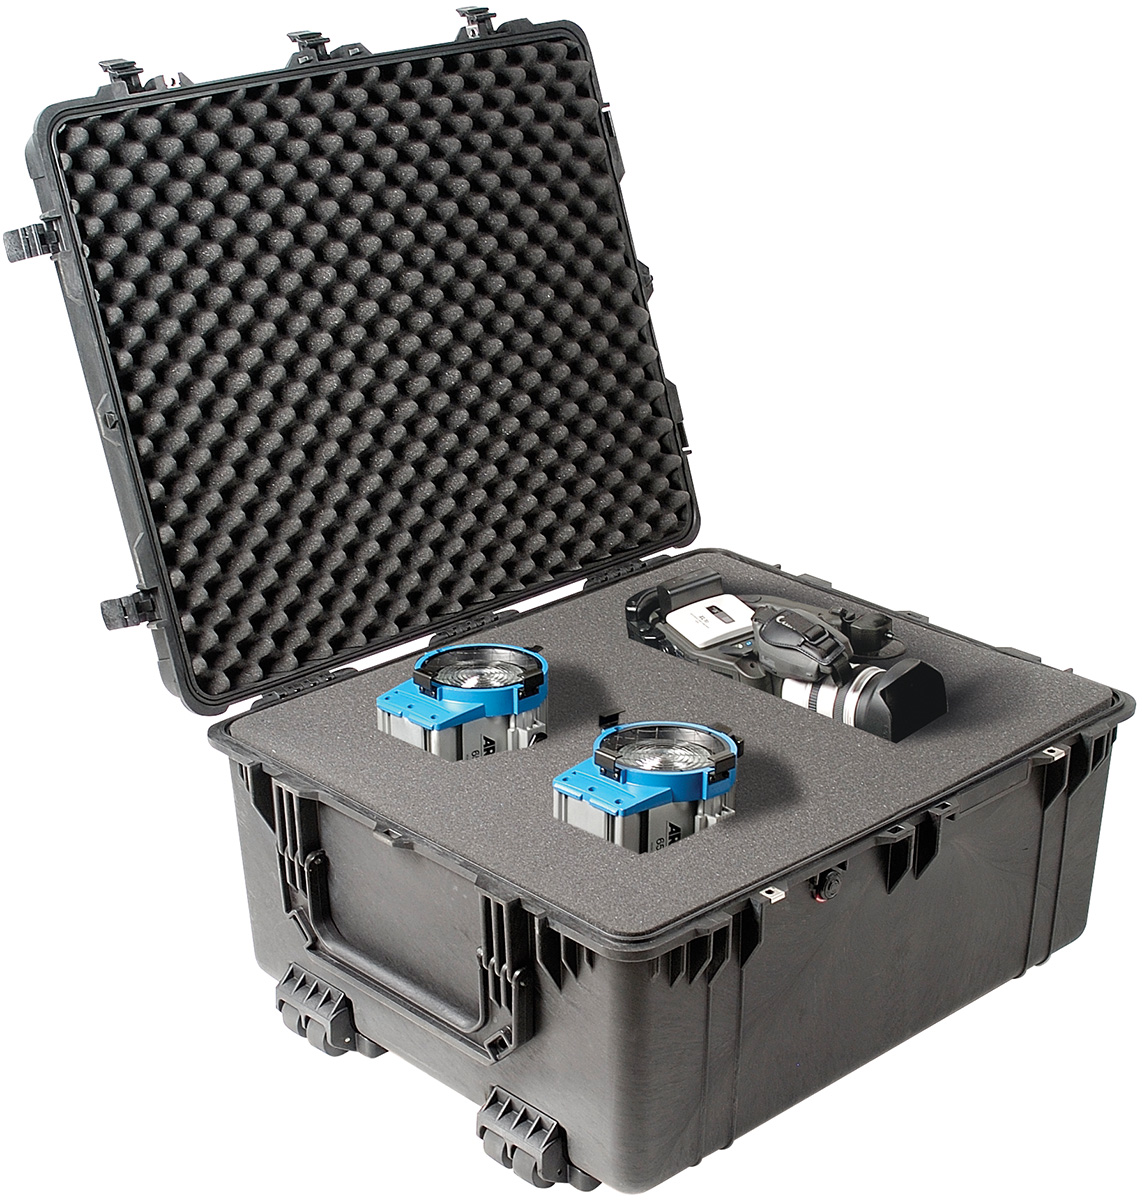 pelican peli products 1690 rolling video film camera gear case